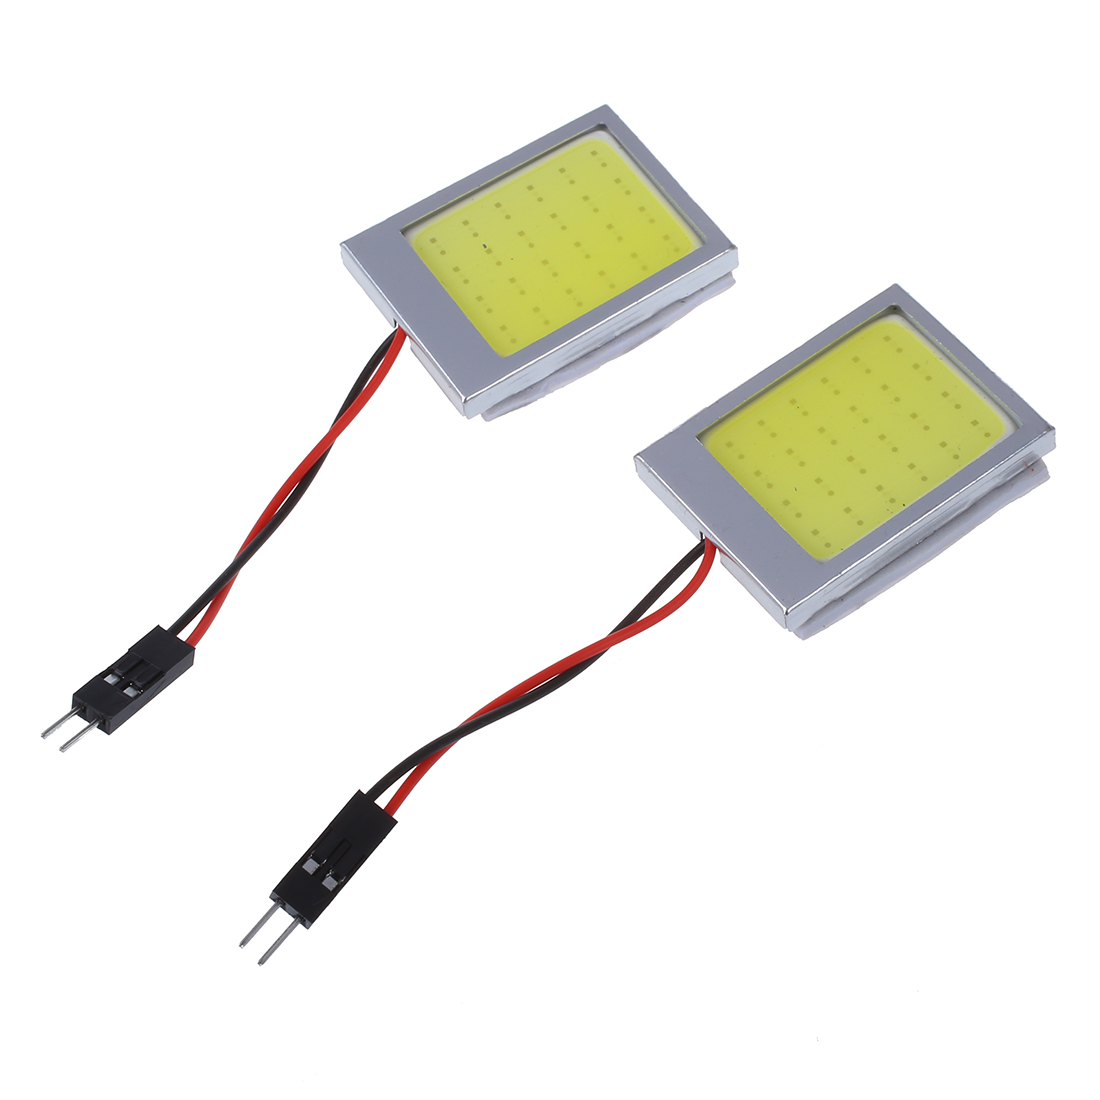 2 X T10 Panel 24 SMD COB LED Car Reading Bulb / Ceiling Lamp White + T10 / BA9S / Dome Festoon Adapters 1set t10 festoon 18 24 36 48smd cob car led vehicle panel lamps auto interior reading lamp bulb light dome 3adapter dc 12v